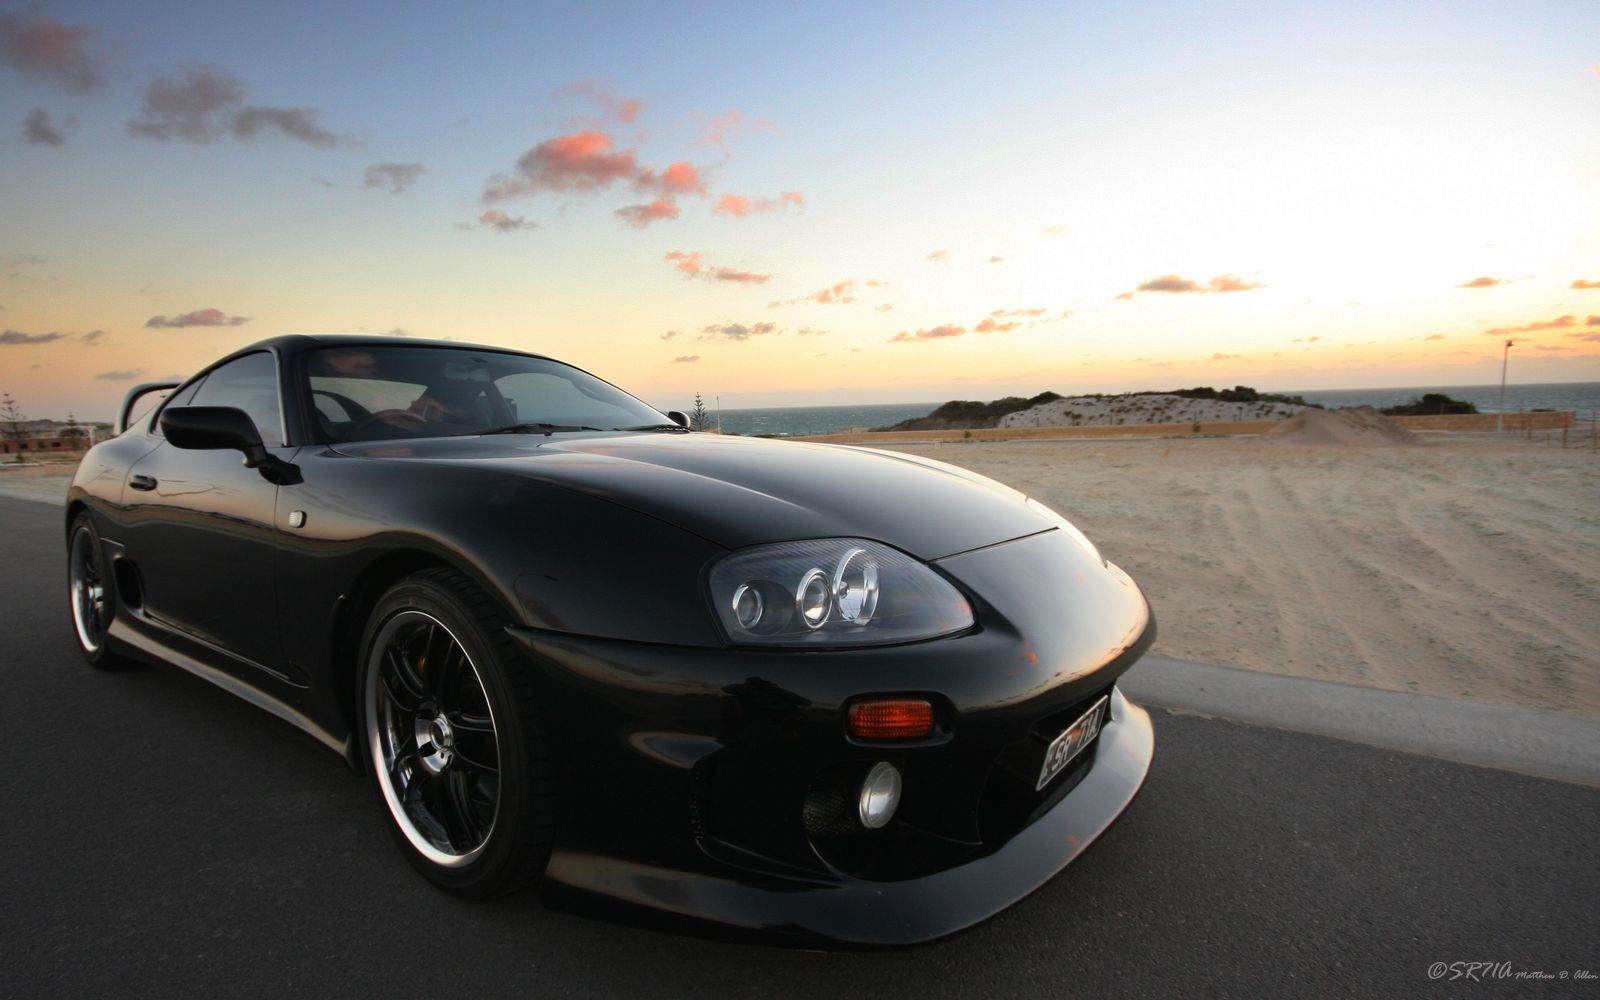 Toyota Supra Wallpapers 4084 Hd Wallpapers in Cars   Imagescicom 1600x1000